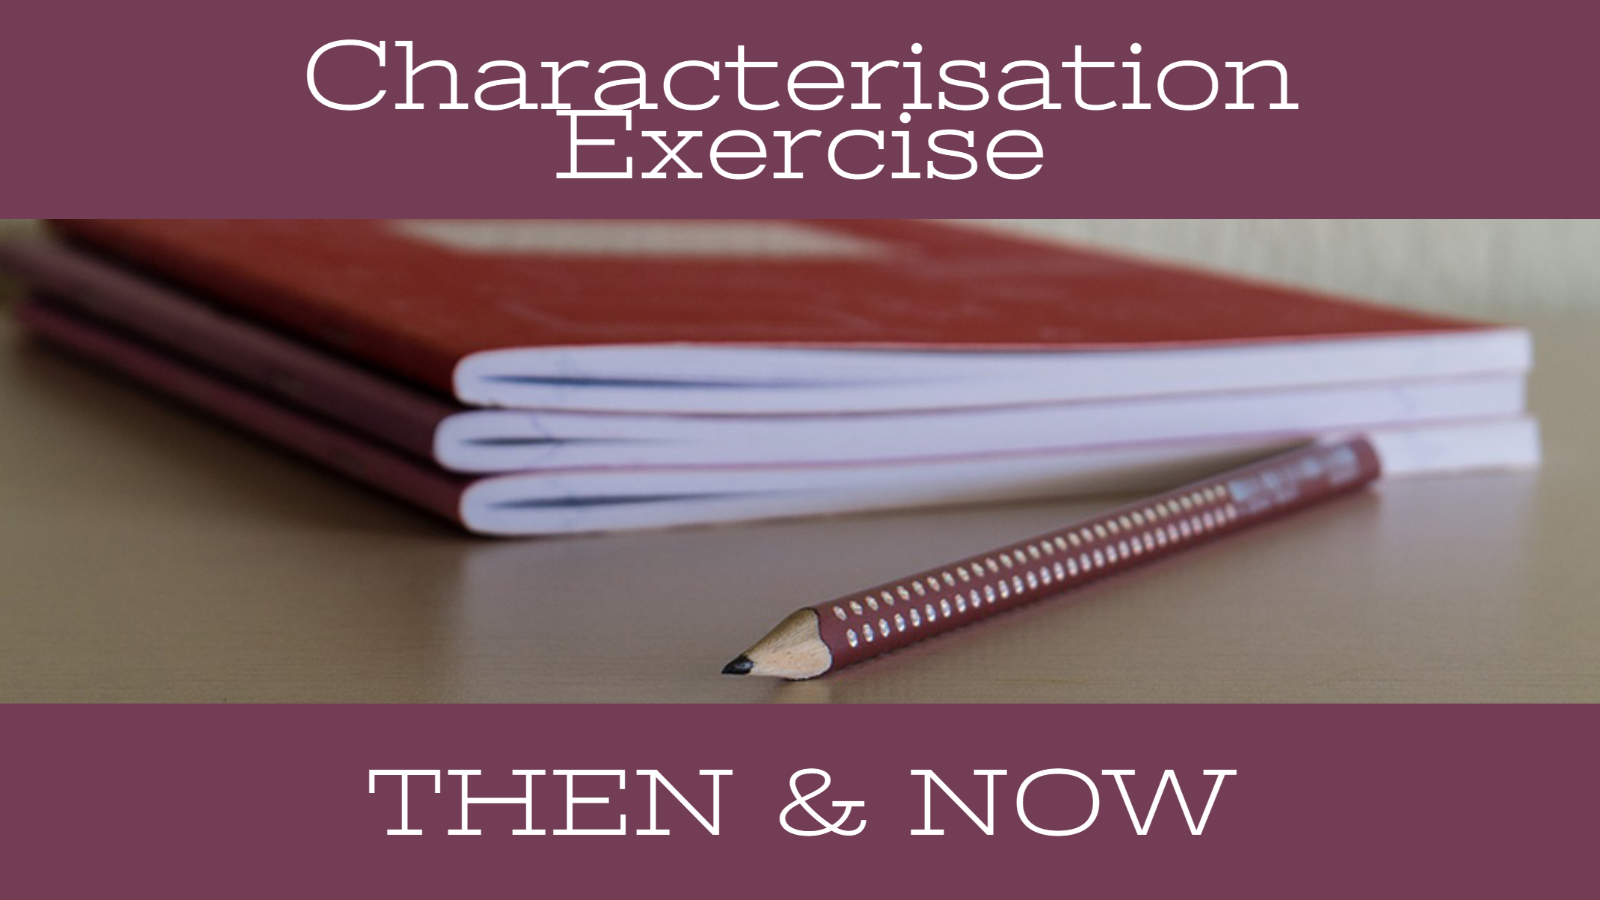 Characterisation Exercise: Then & Now